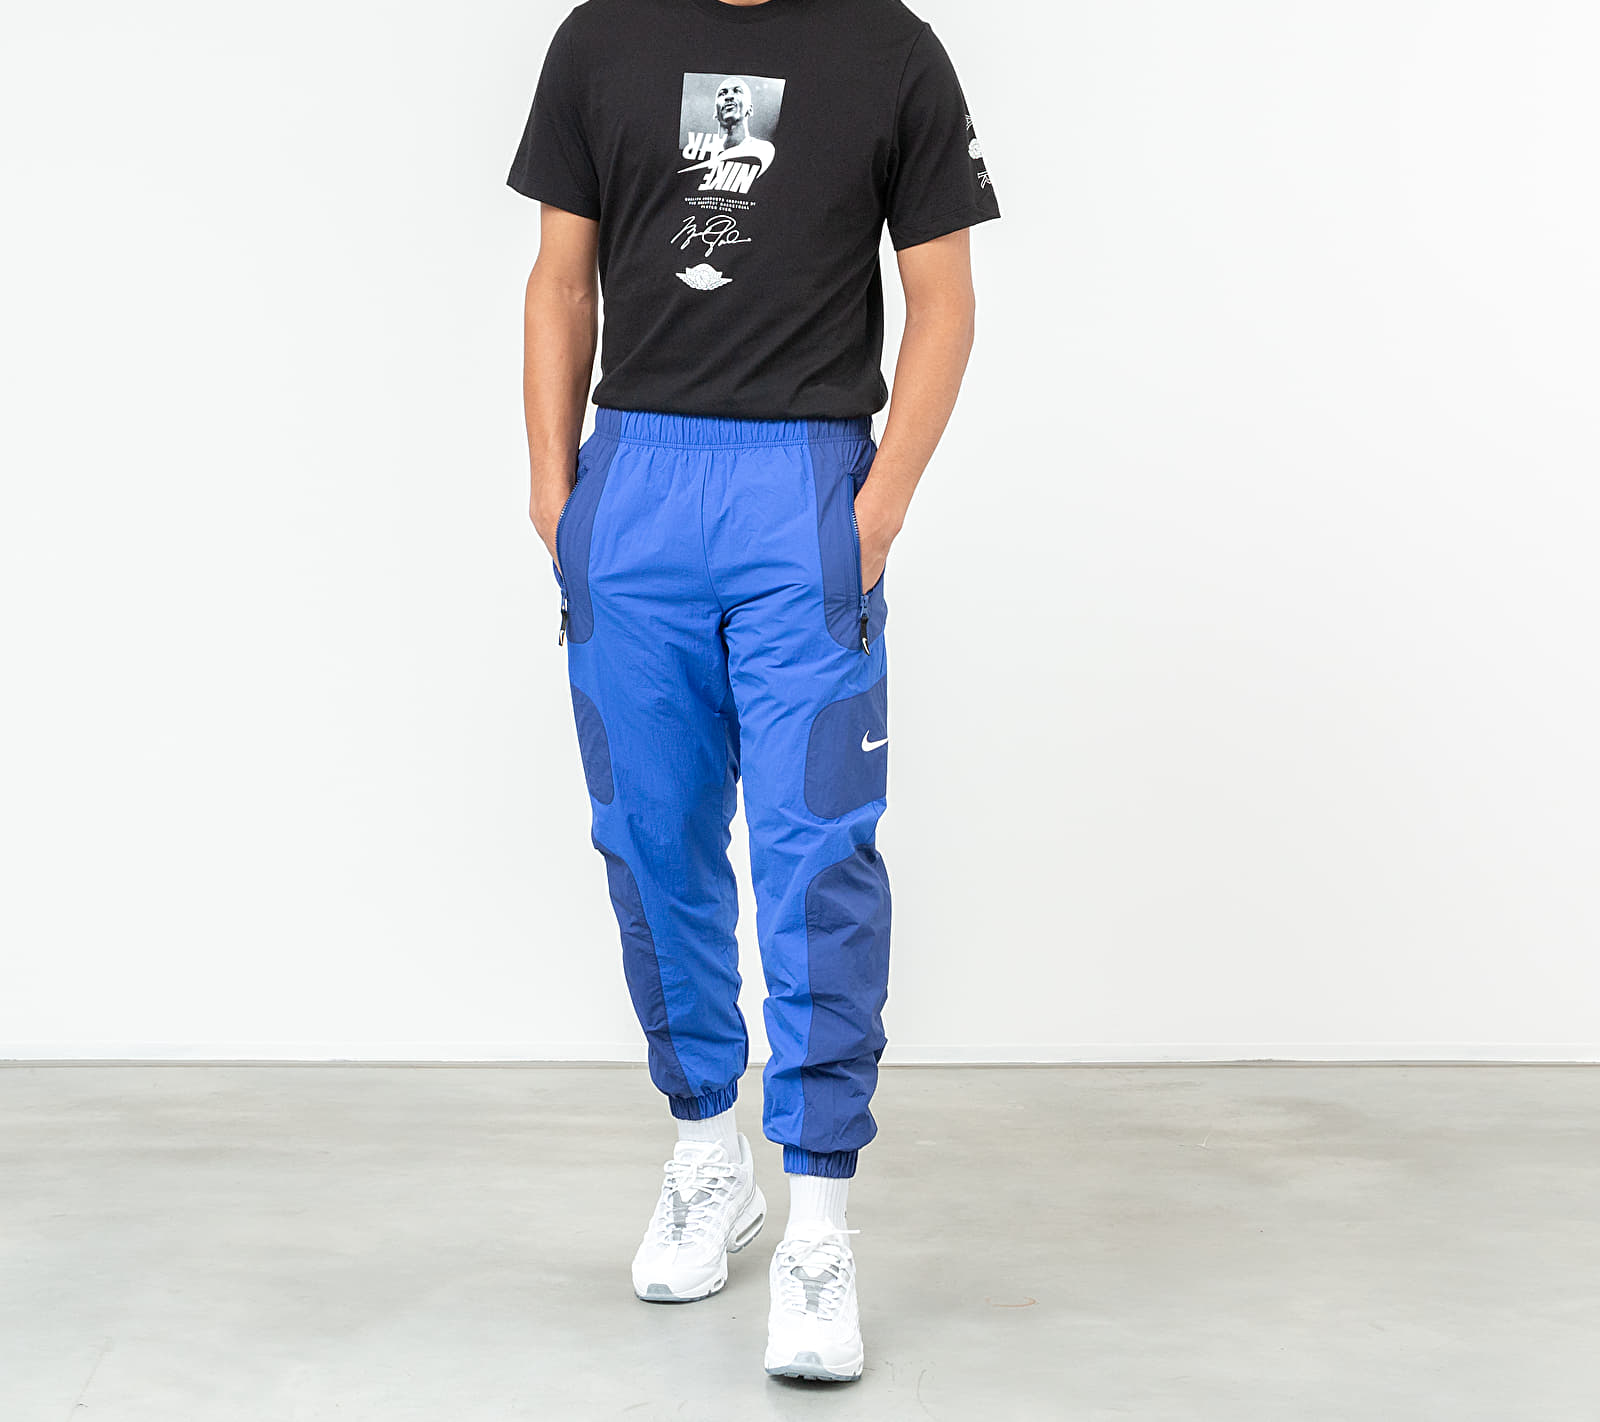 Nike Sportswear Re-Issue Pants Deep Royal Blue/ Hyper Royal/ White